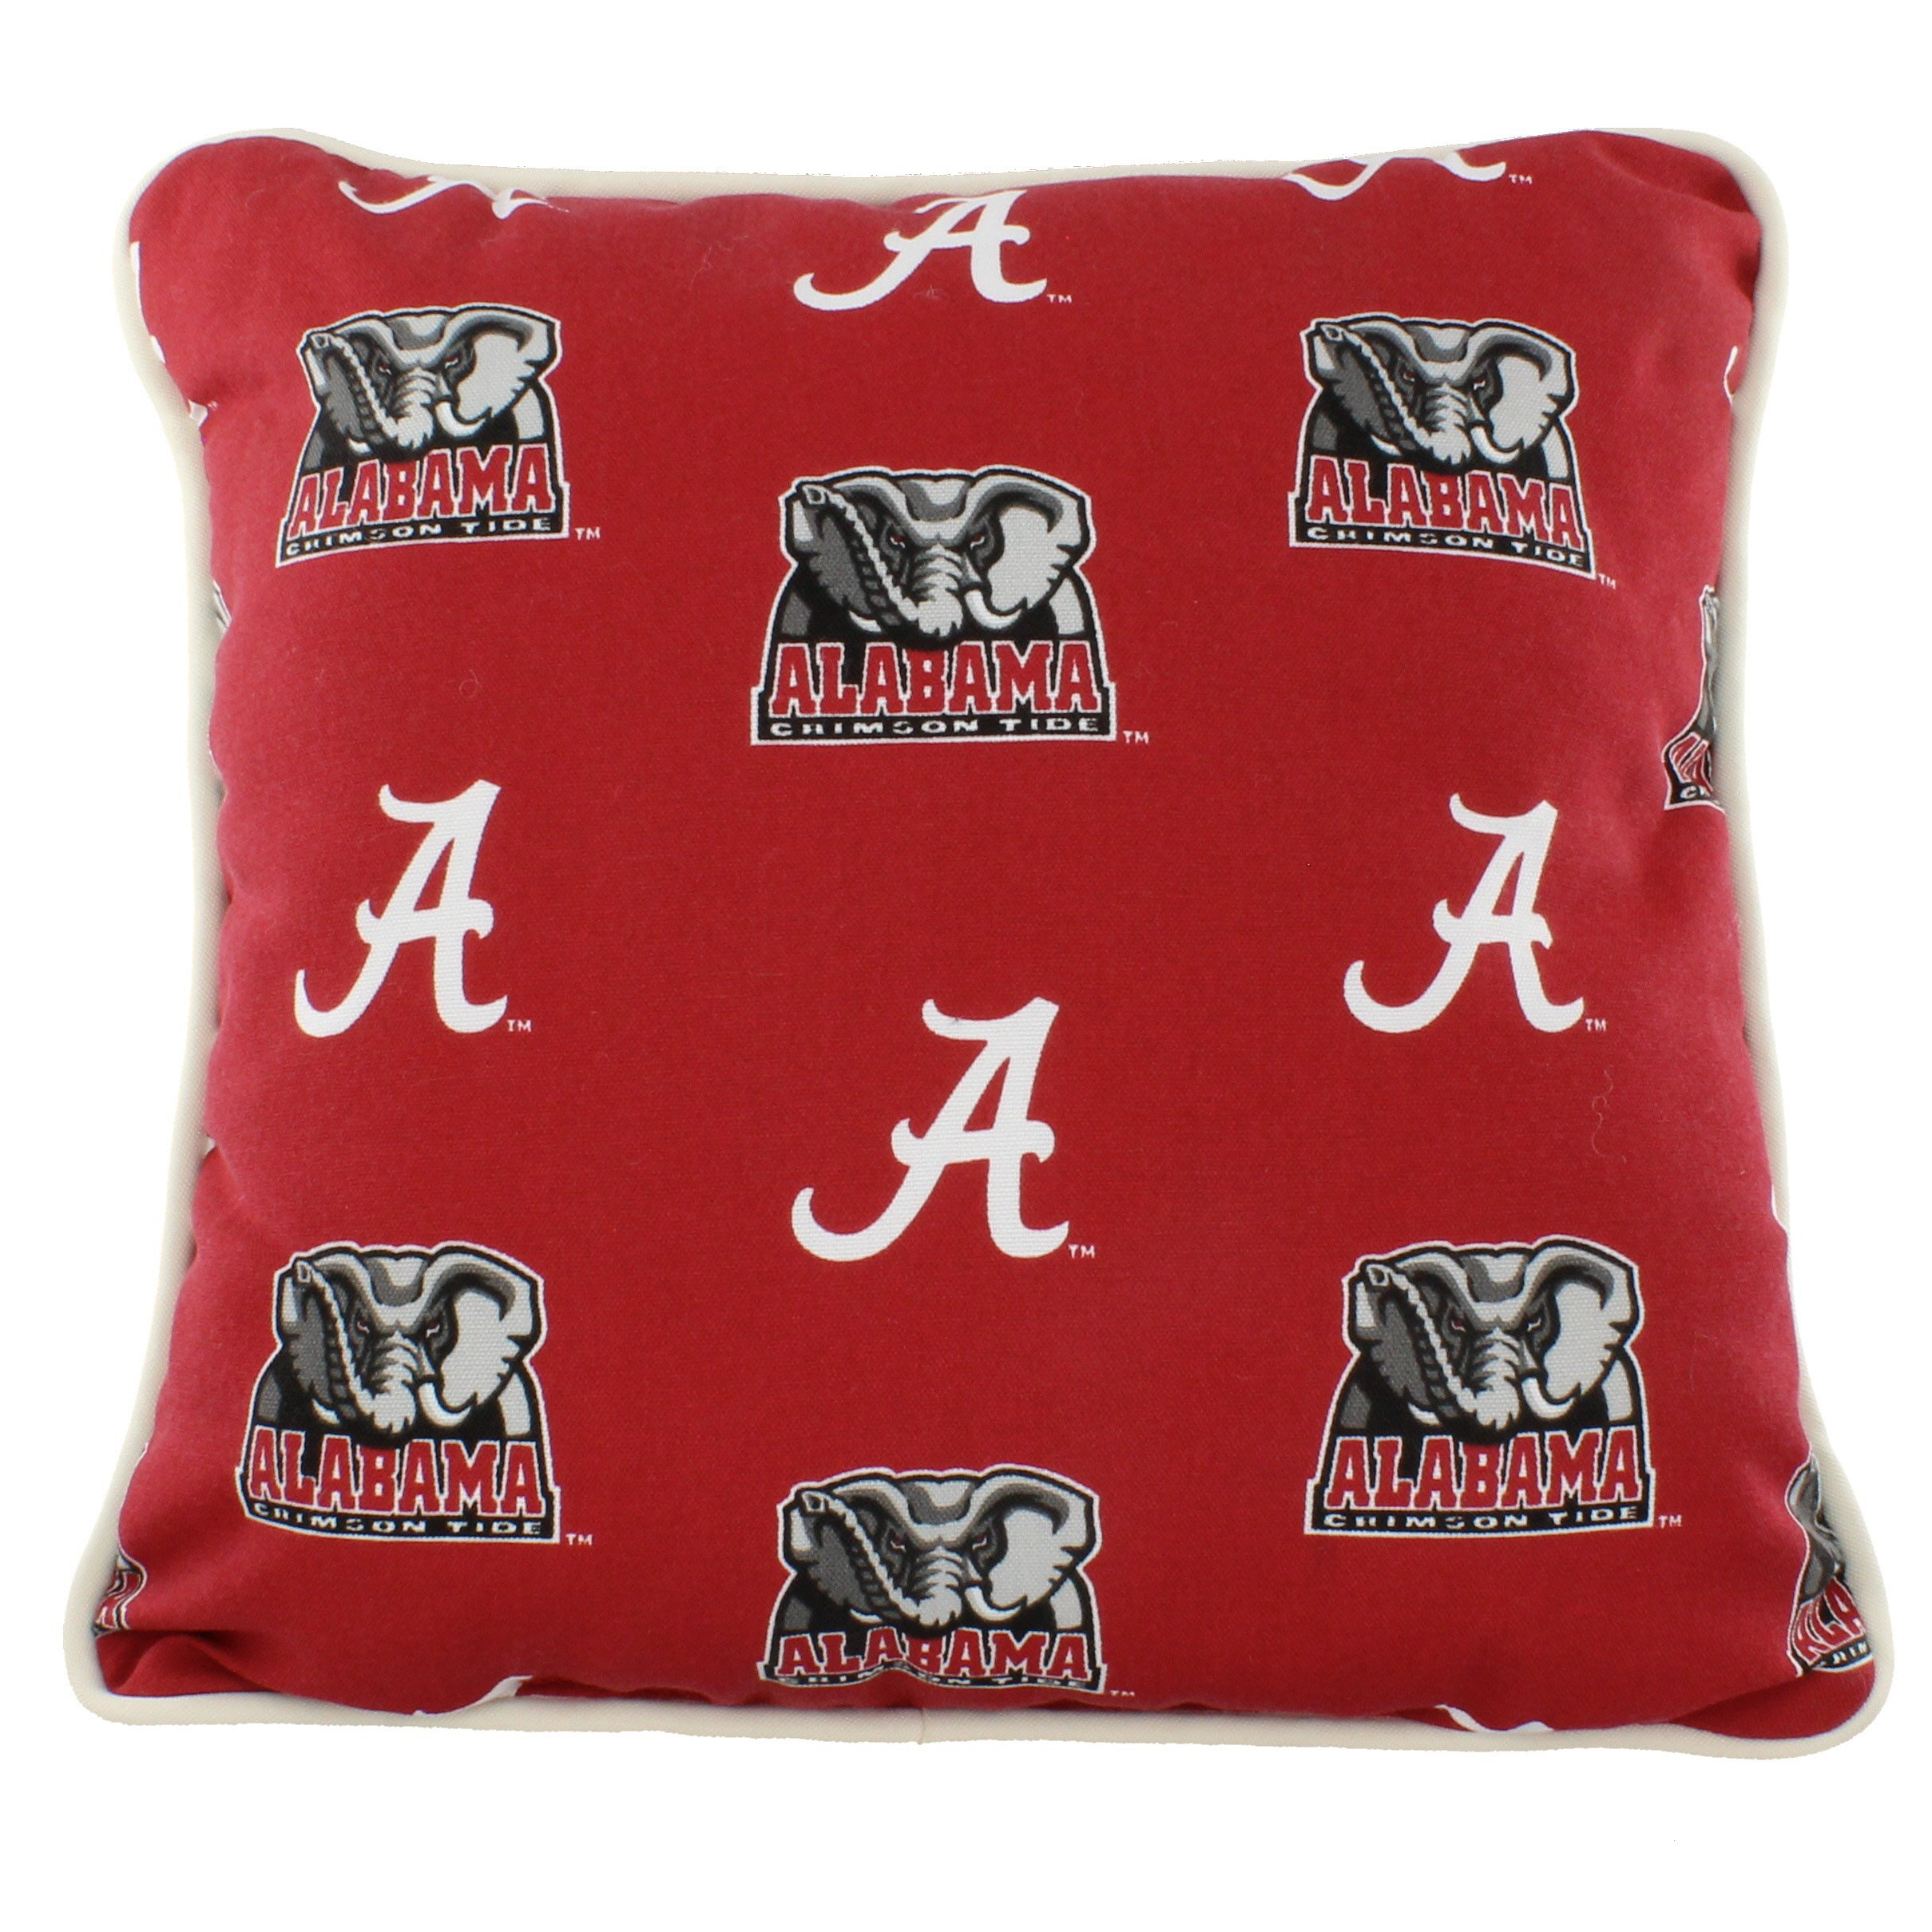 College Covers ALAODP Alabama Crimson Tide Outdoor Decorative Pillow, 16'' x 16'', Red